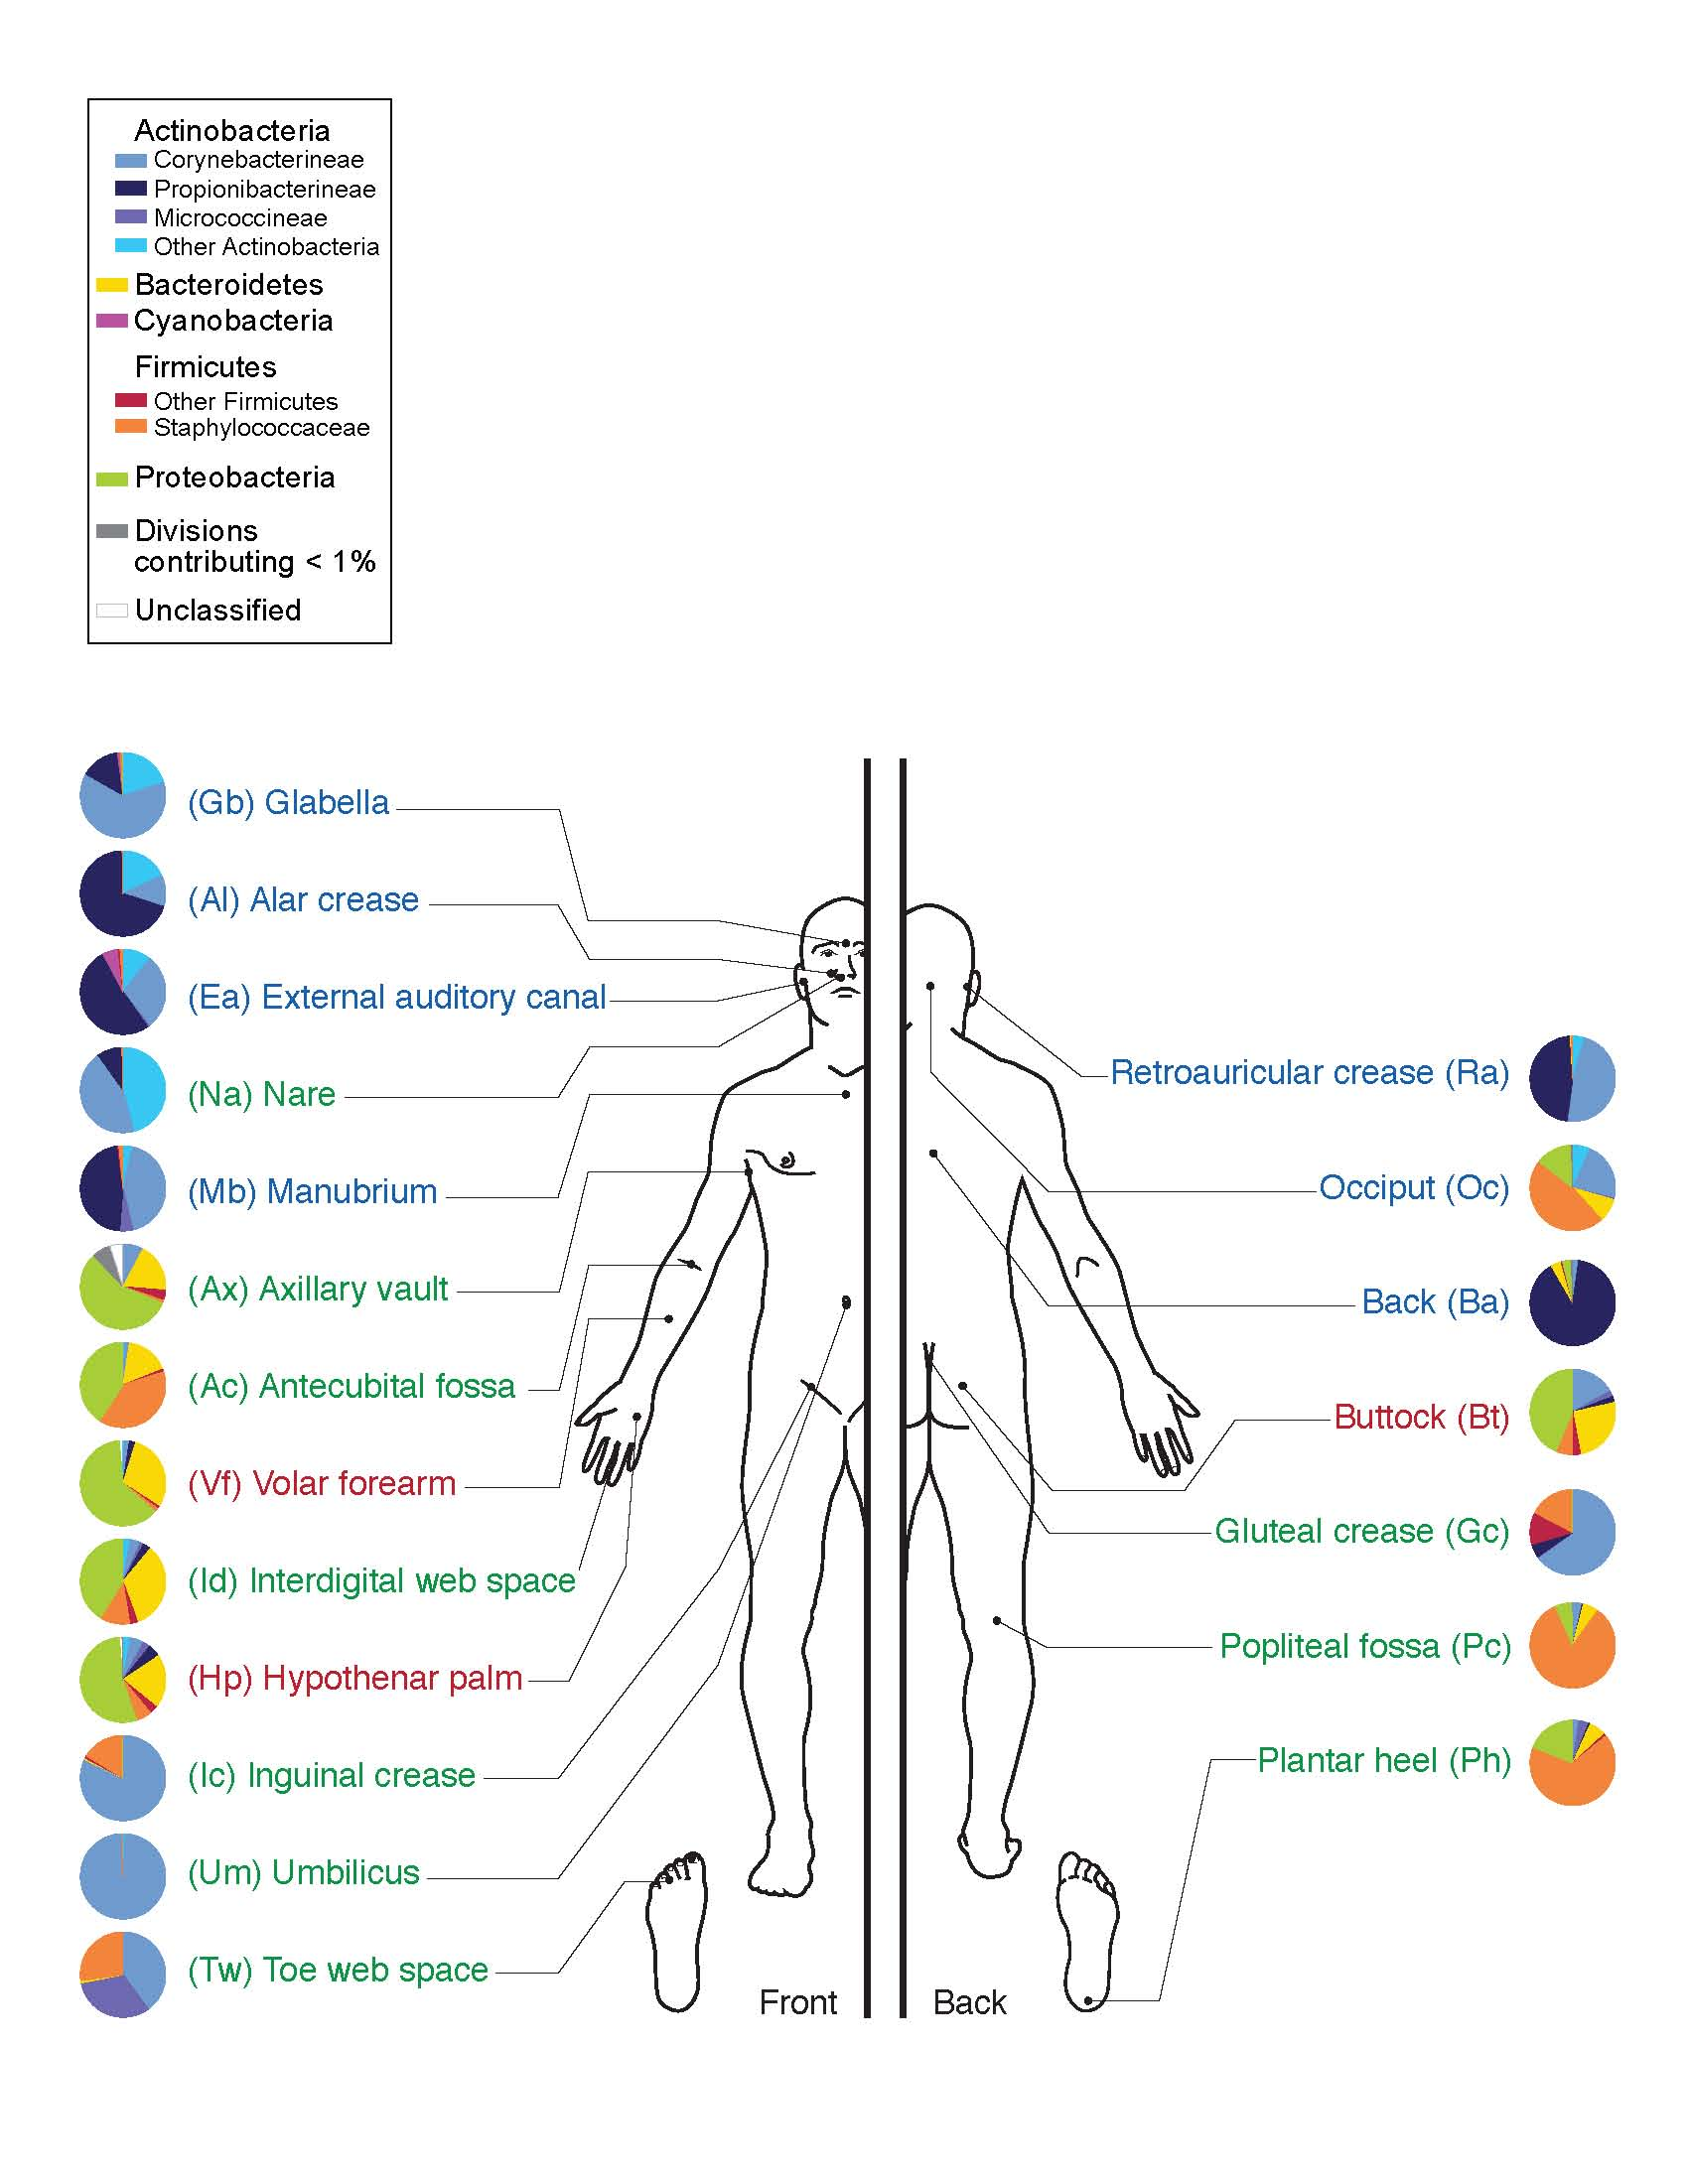 This diagram from the human microbiome project describes the various